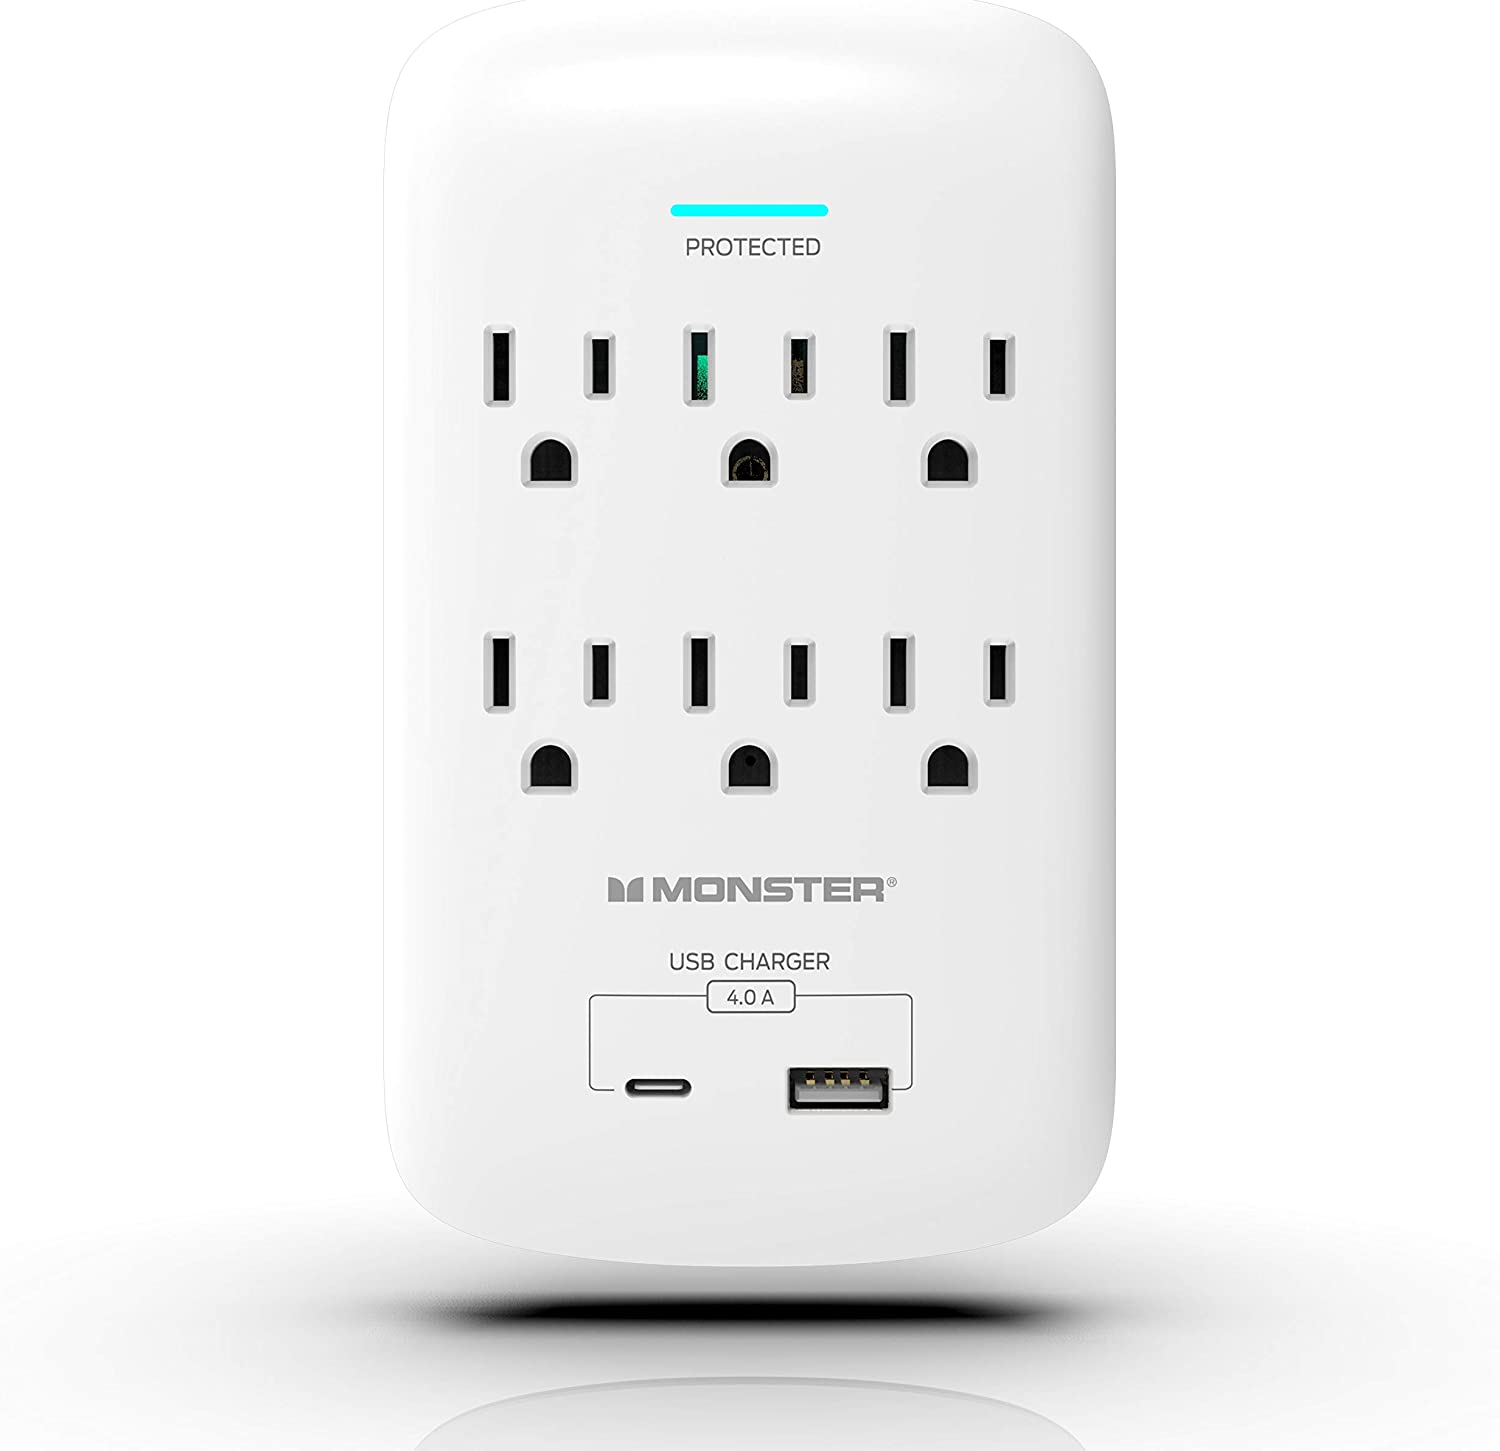 Monster Wall Tap Power Surge Protector - Heavy Duty Protection with up to 6 AC, 1 USB-C and 1 USB-A Port - Ideal for Computers, Home Appliance and Office Equipment, White, 6-Outlet and 2 USB Ports